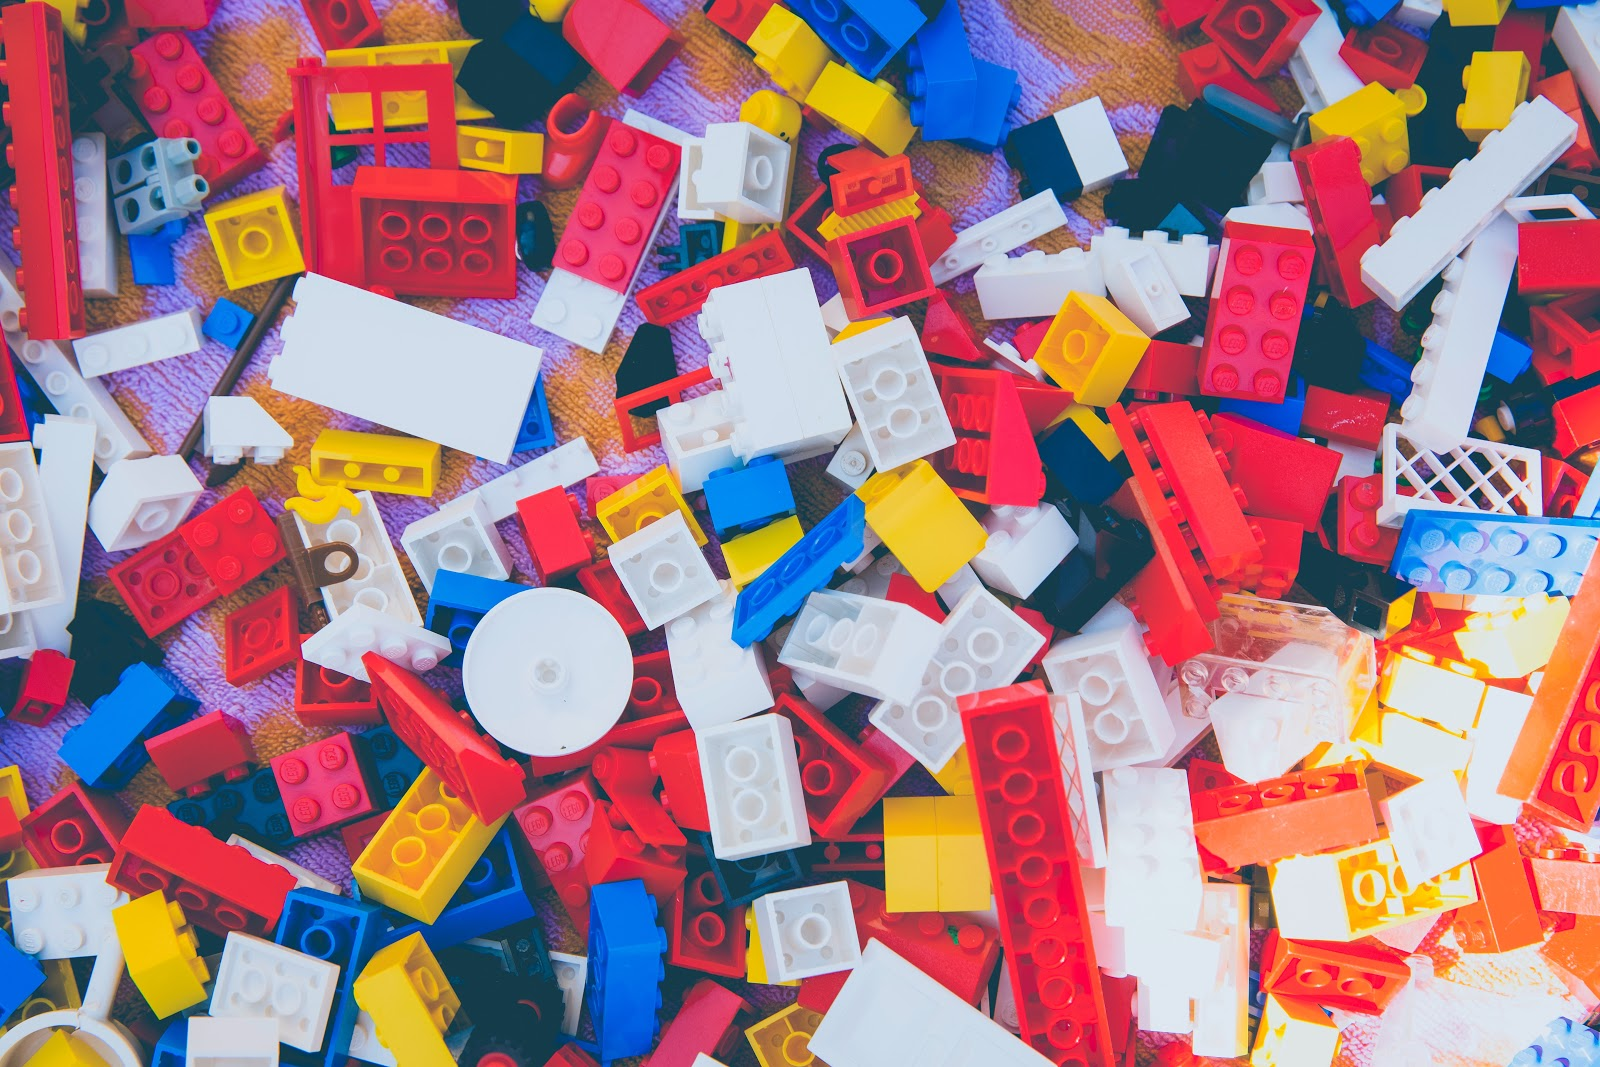 An assortment of multicolored legos fills this image.